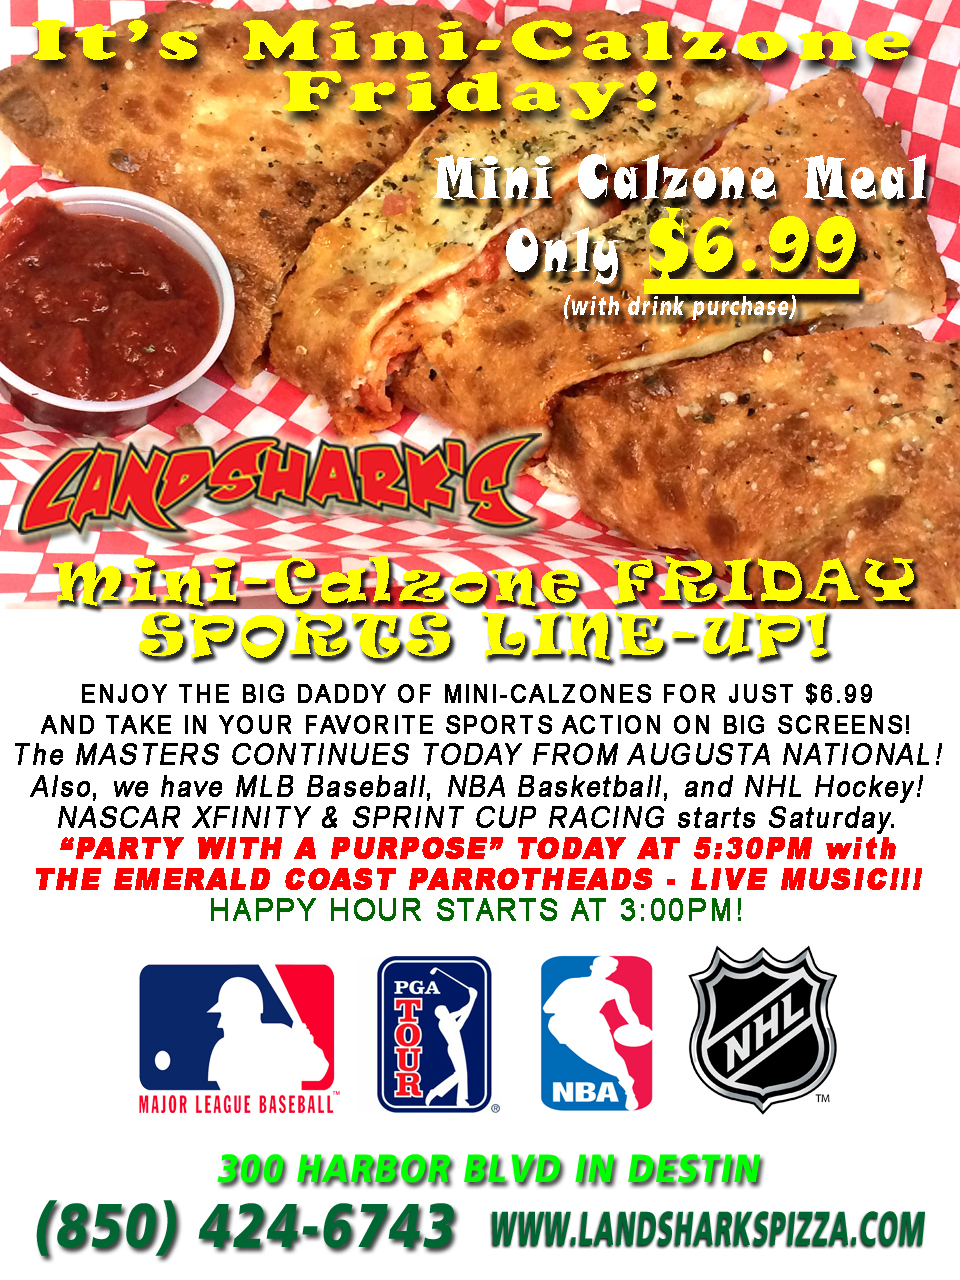 Landsharks Destin FL Best Calzone Friday Special